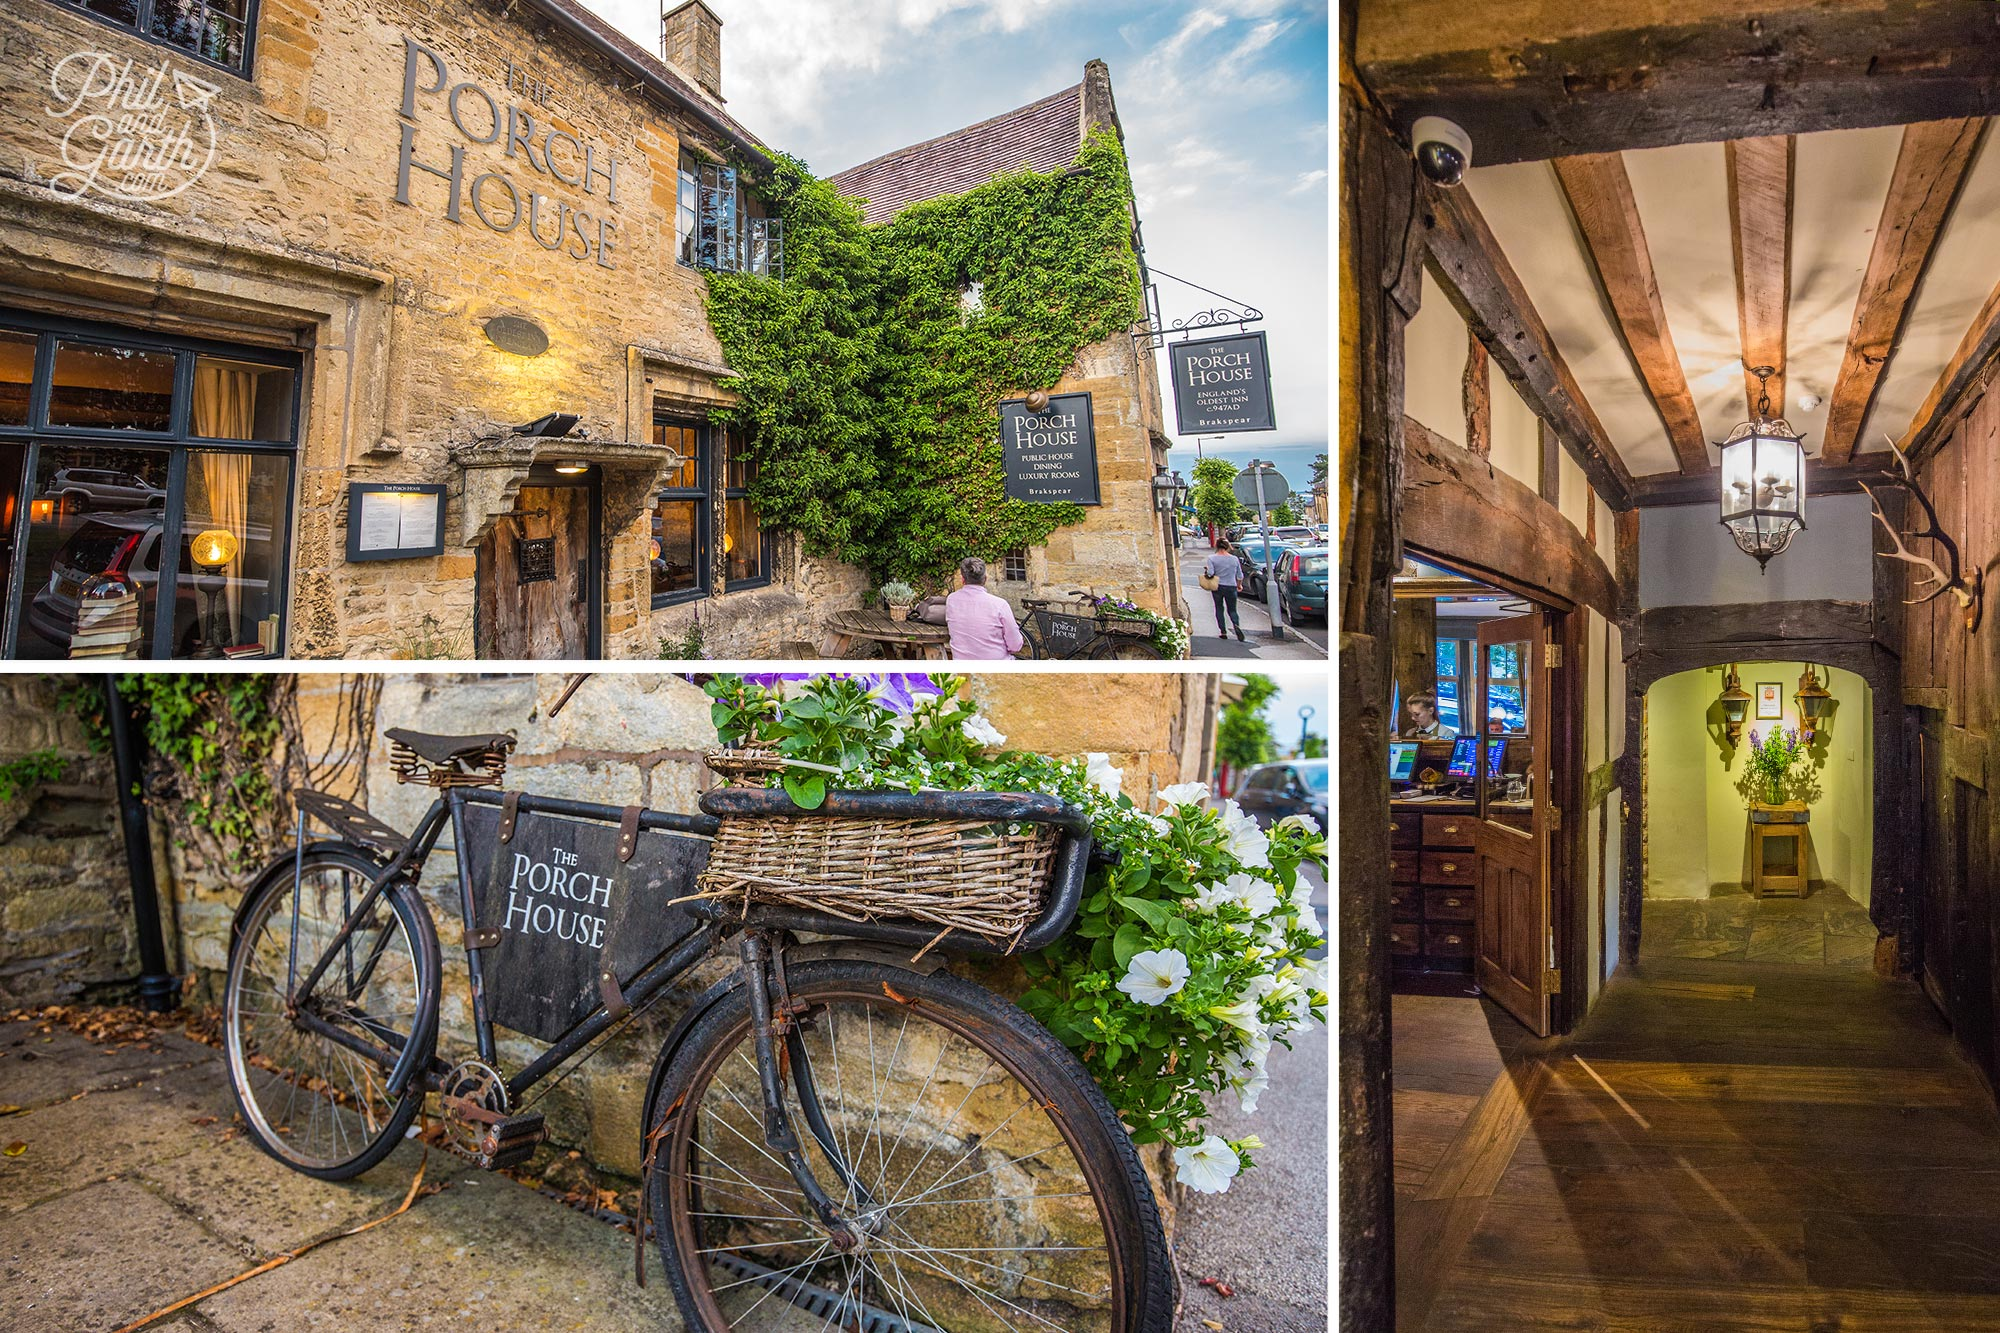 The Porch House - The oldest inn in Britain